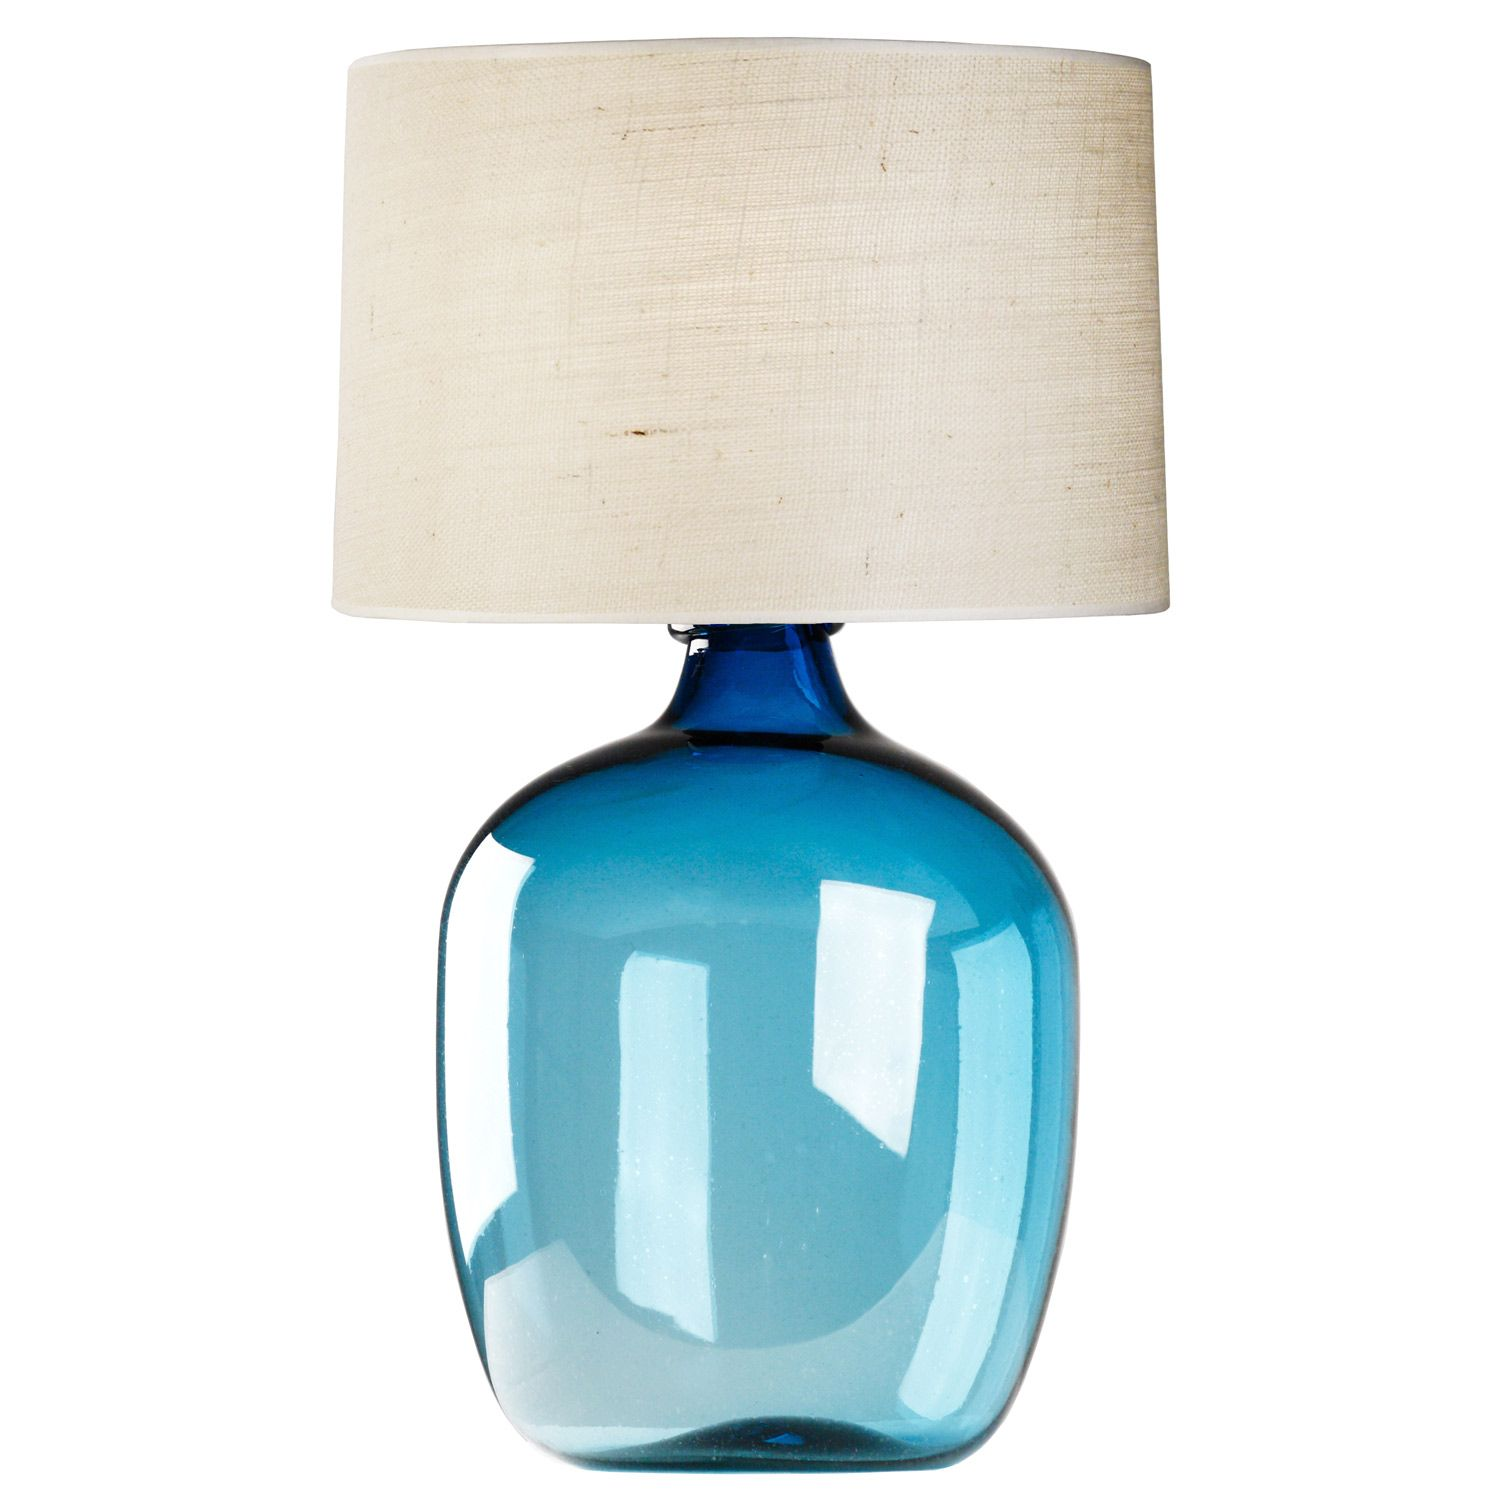 Poseidon Blue Table Lamp Zinc Door